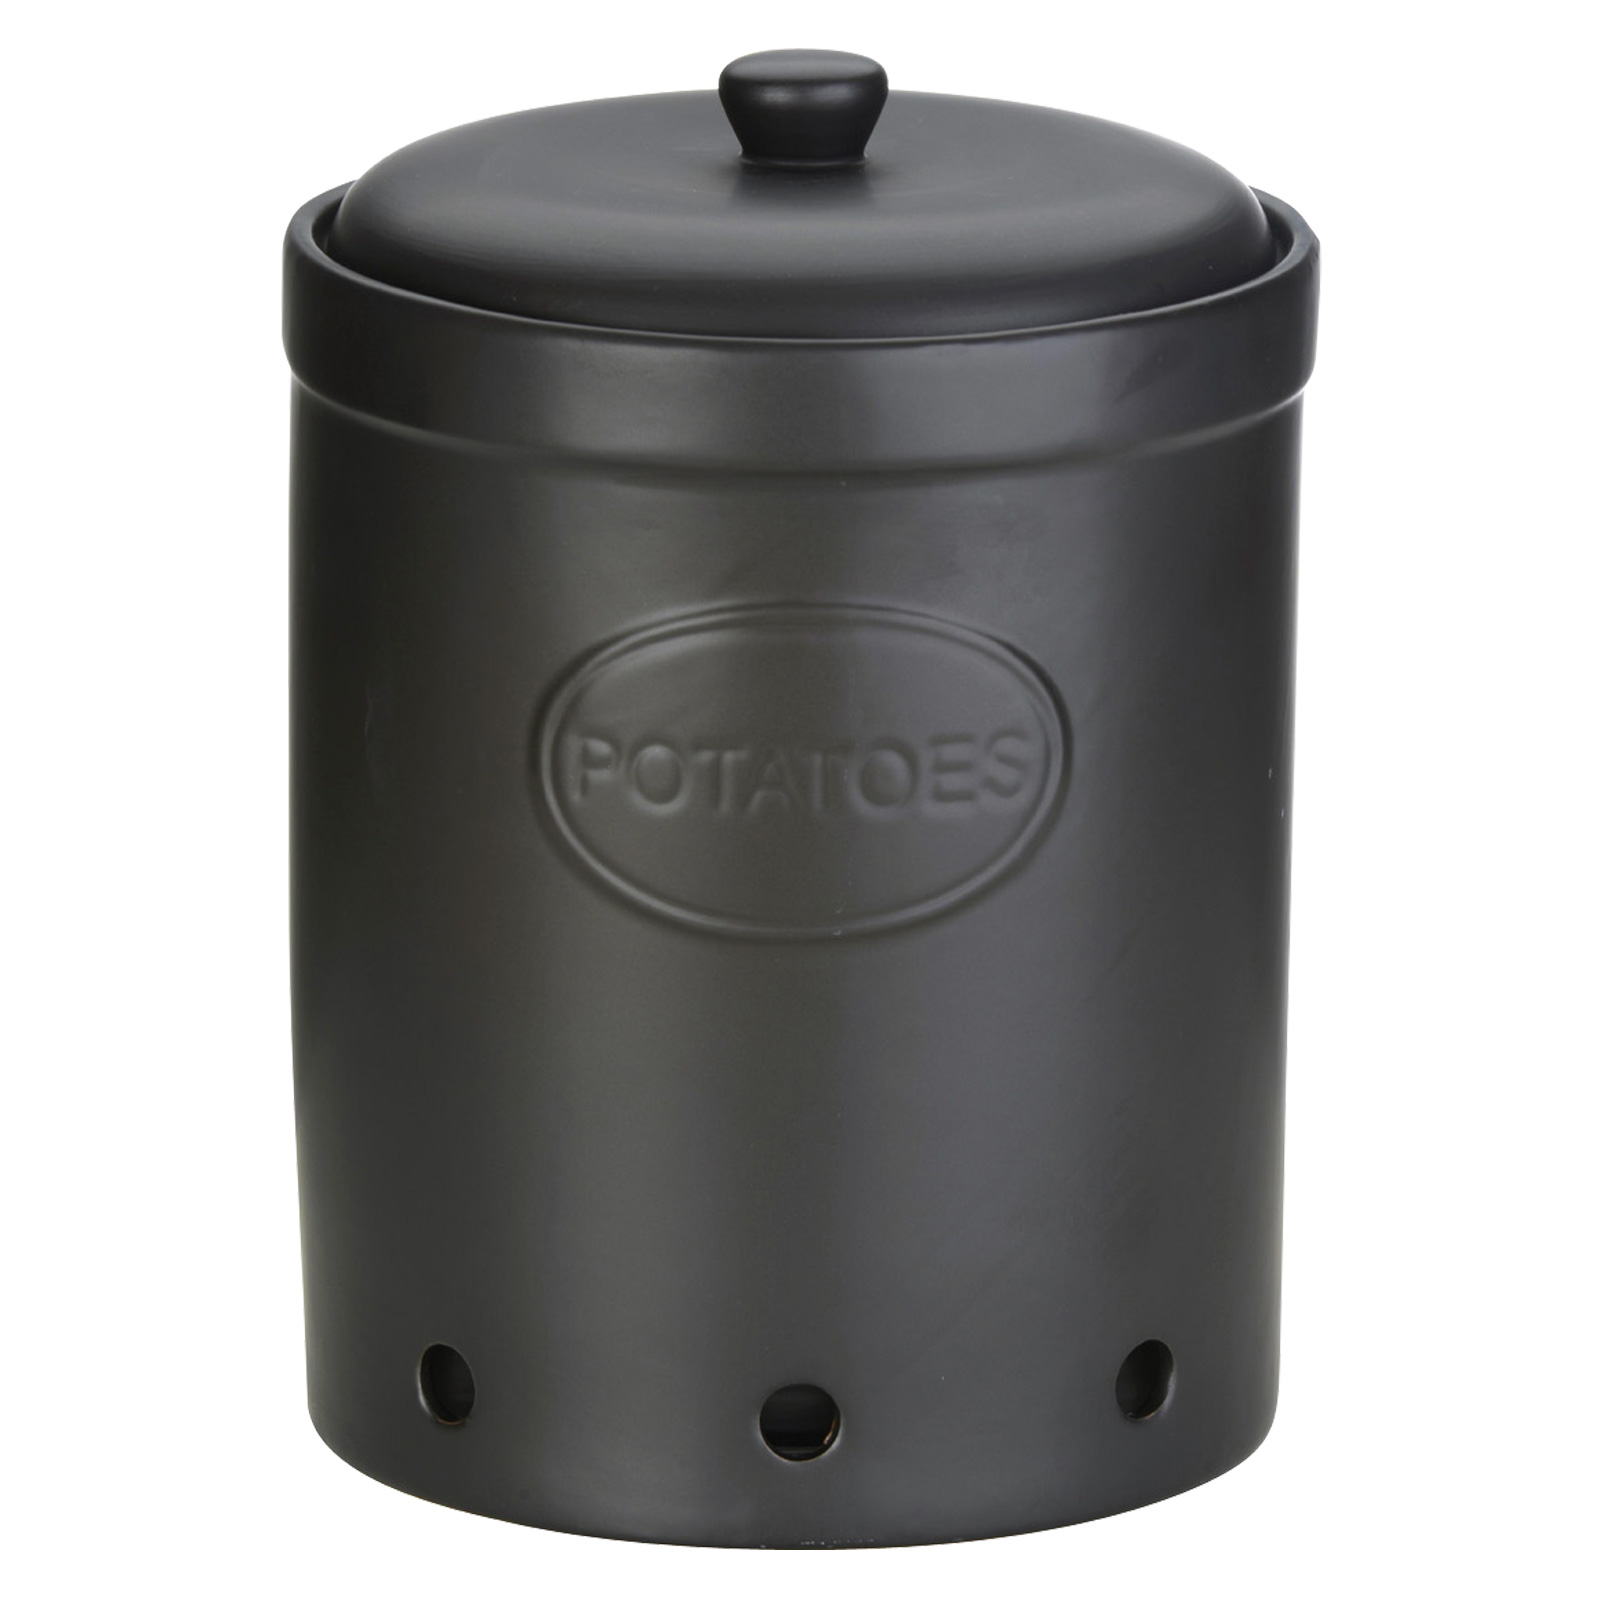 Potato Storage Jar Matte Black